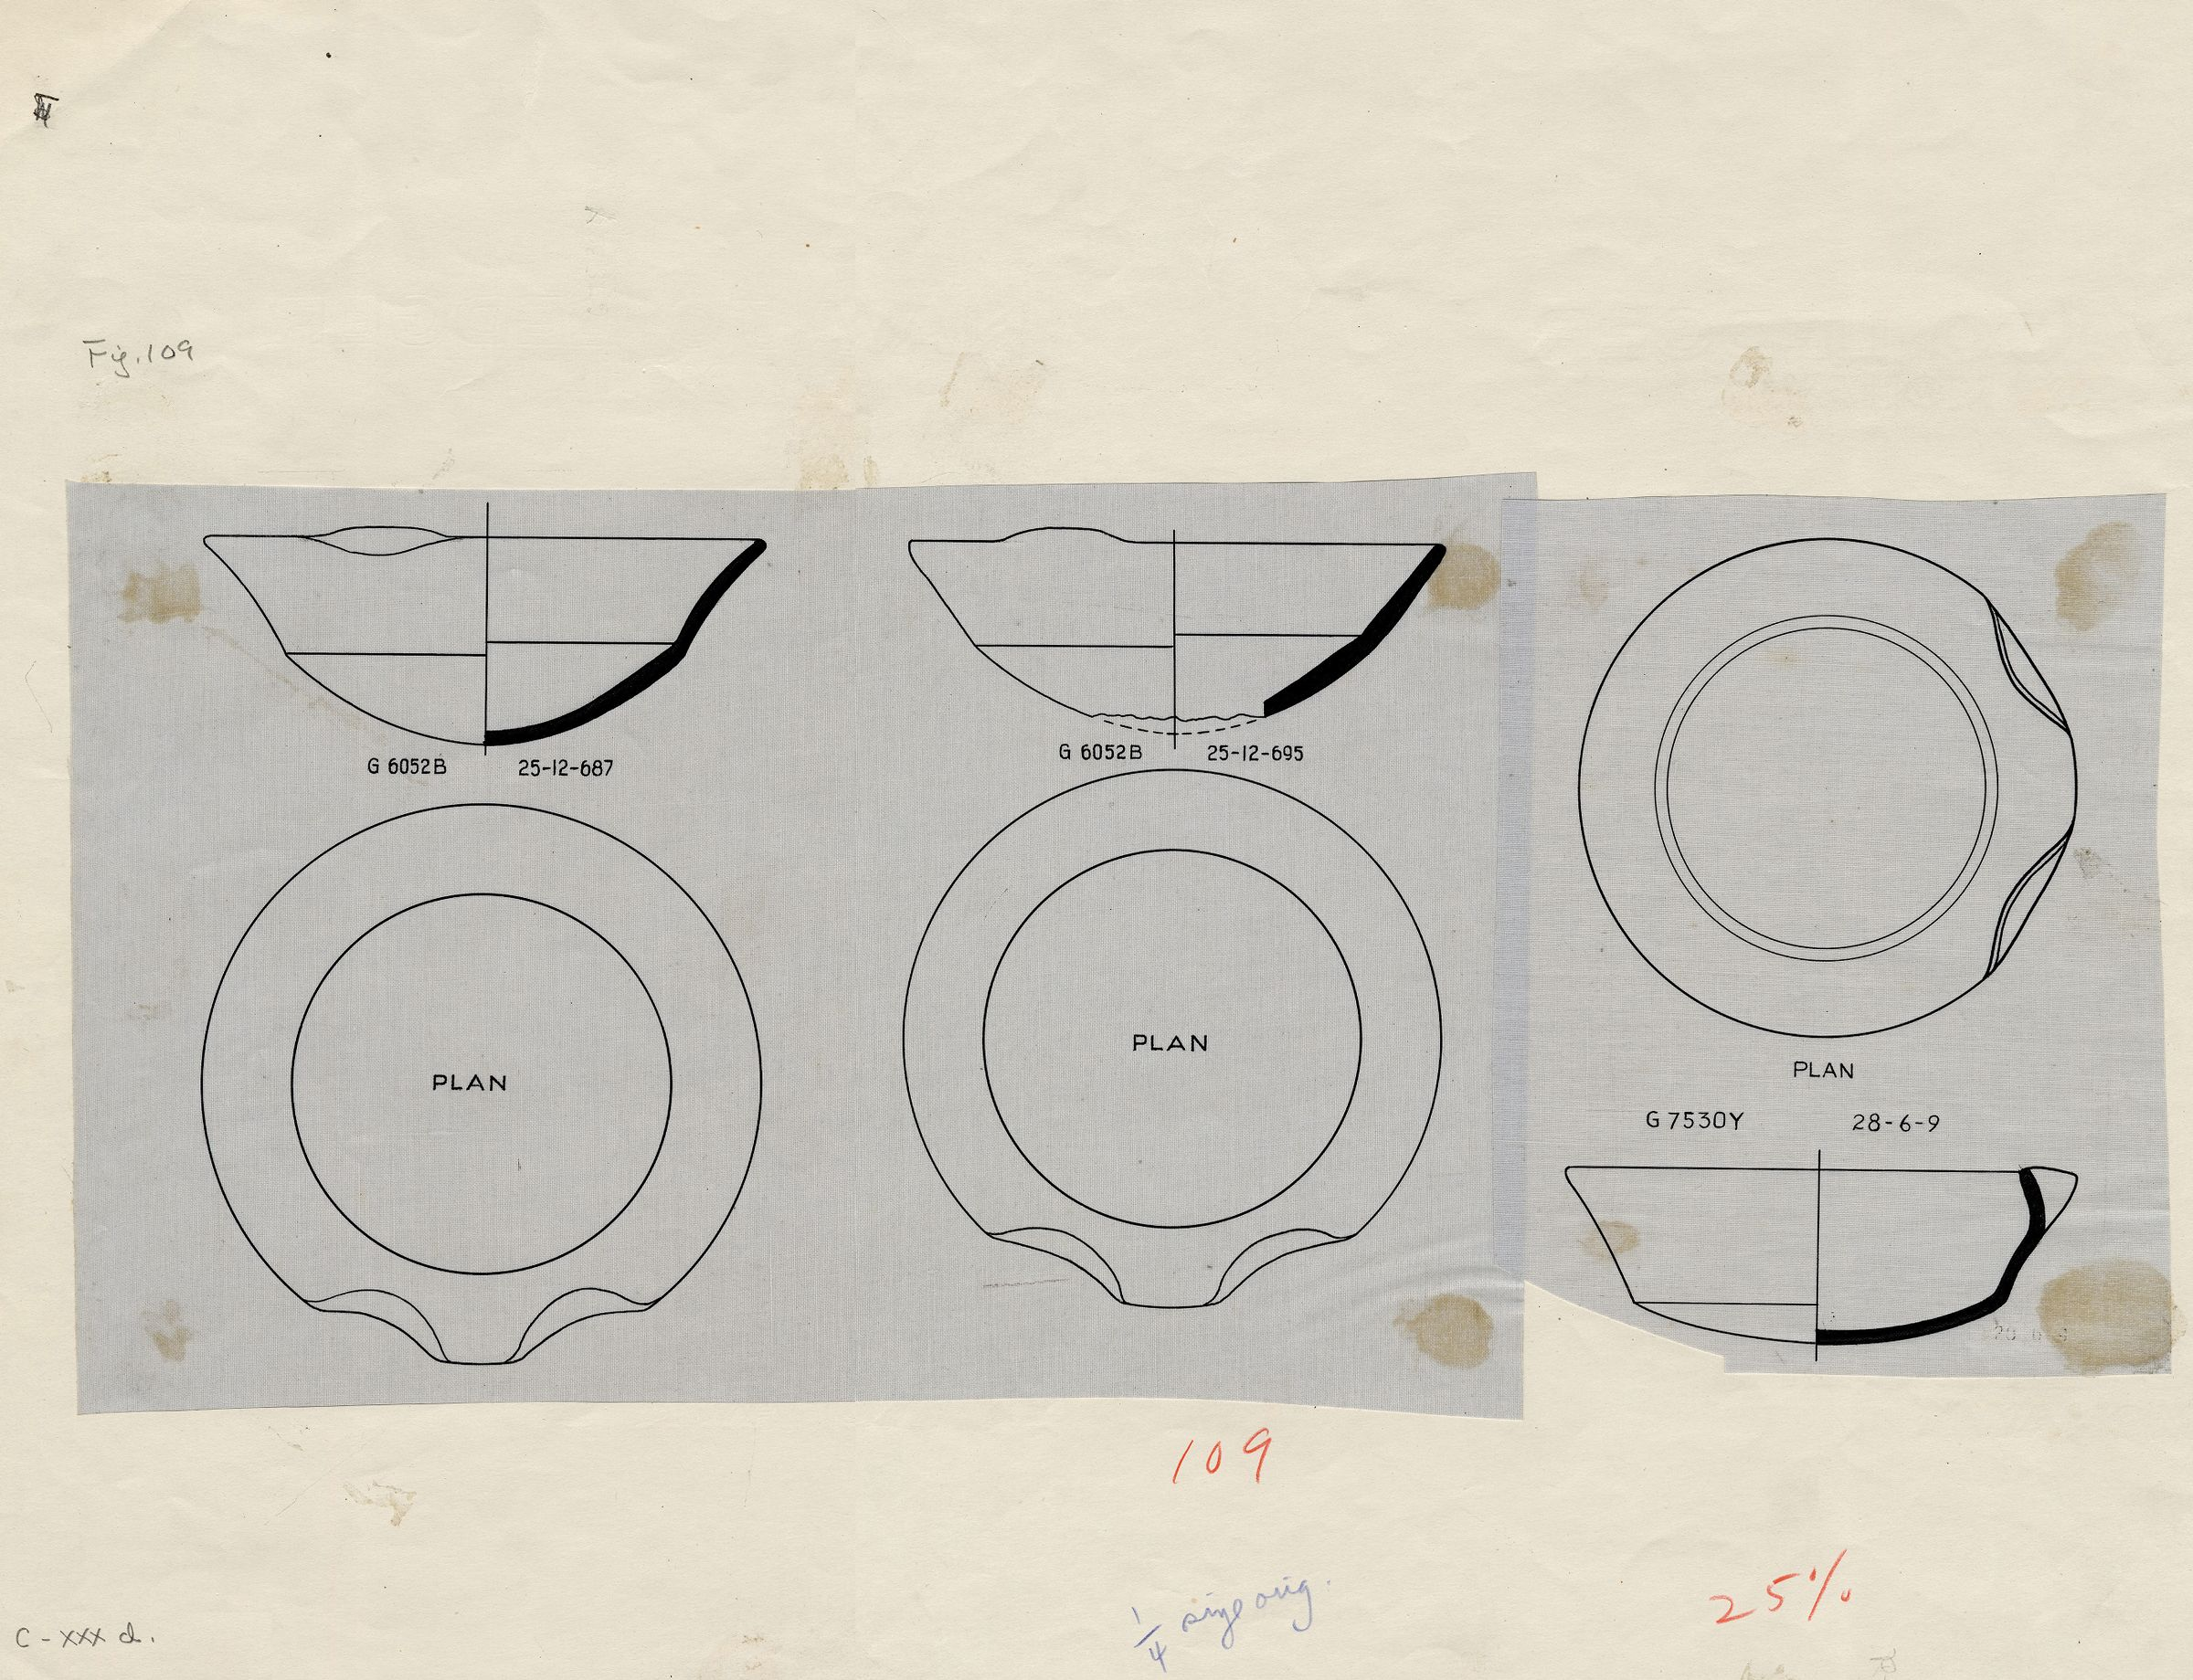 Drawings: Pottery, carinated bowls with lip spouts from G 6052 and G 7530-7540